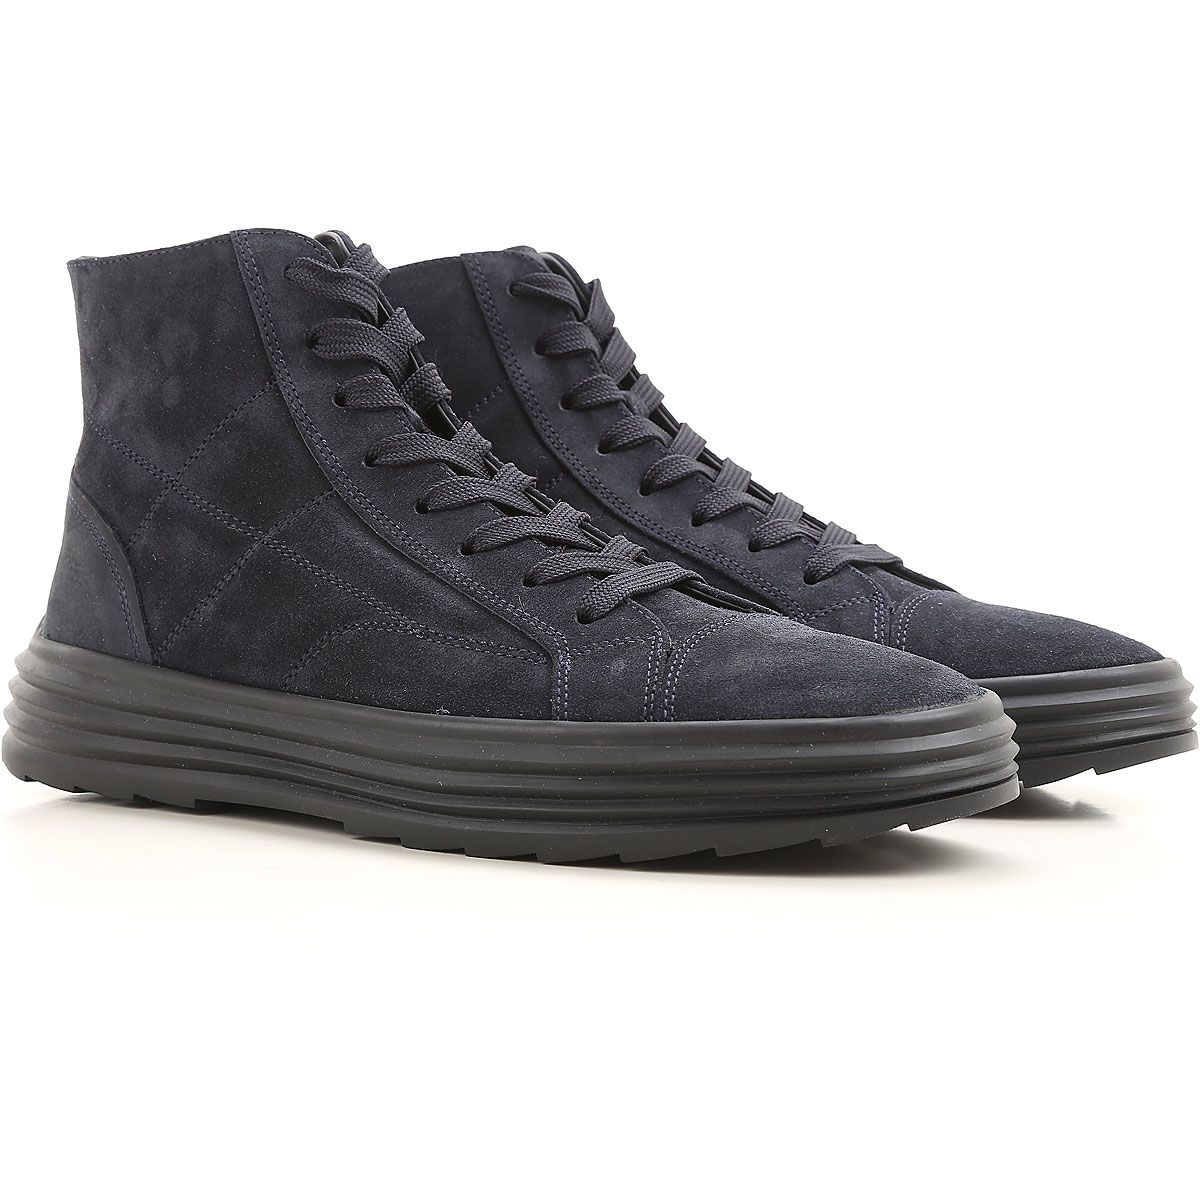 High-top Sneakers Helix H341